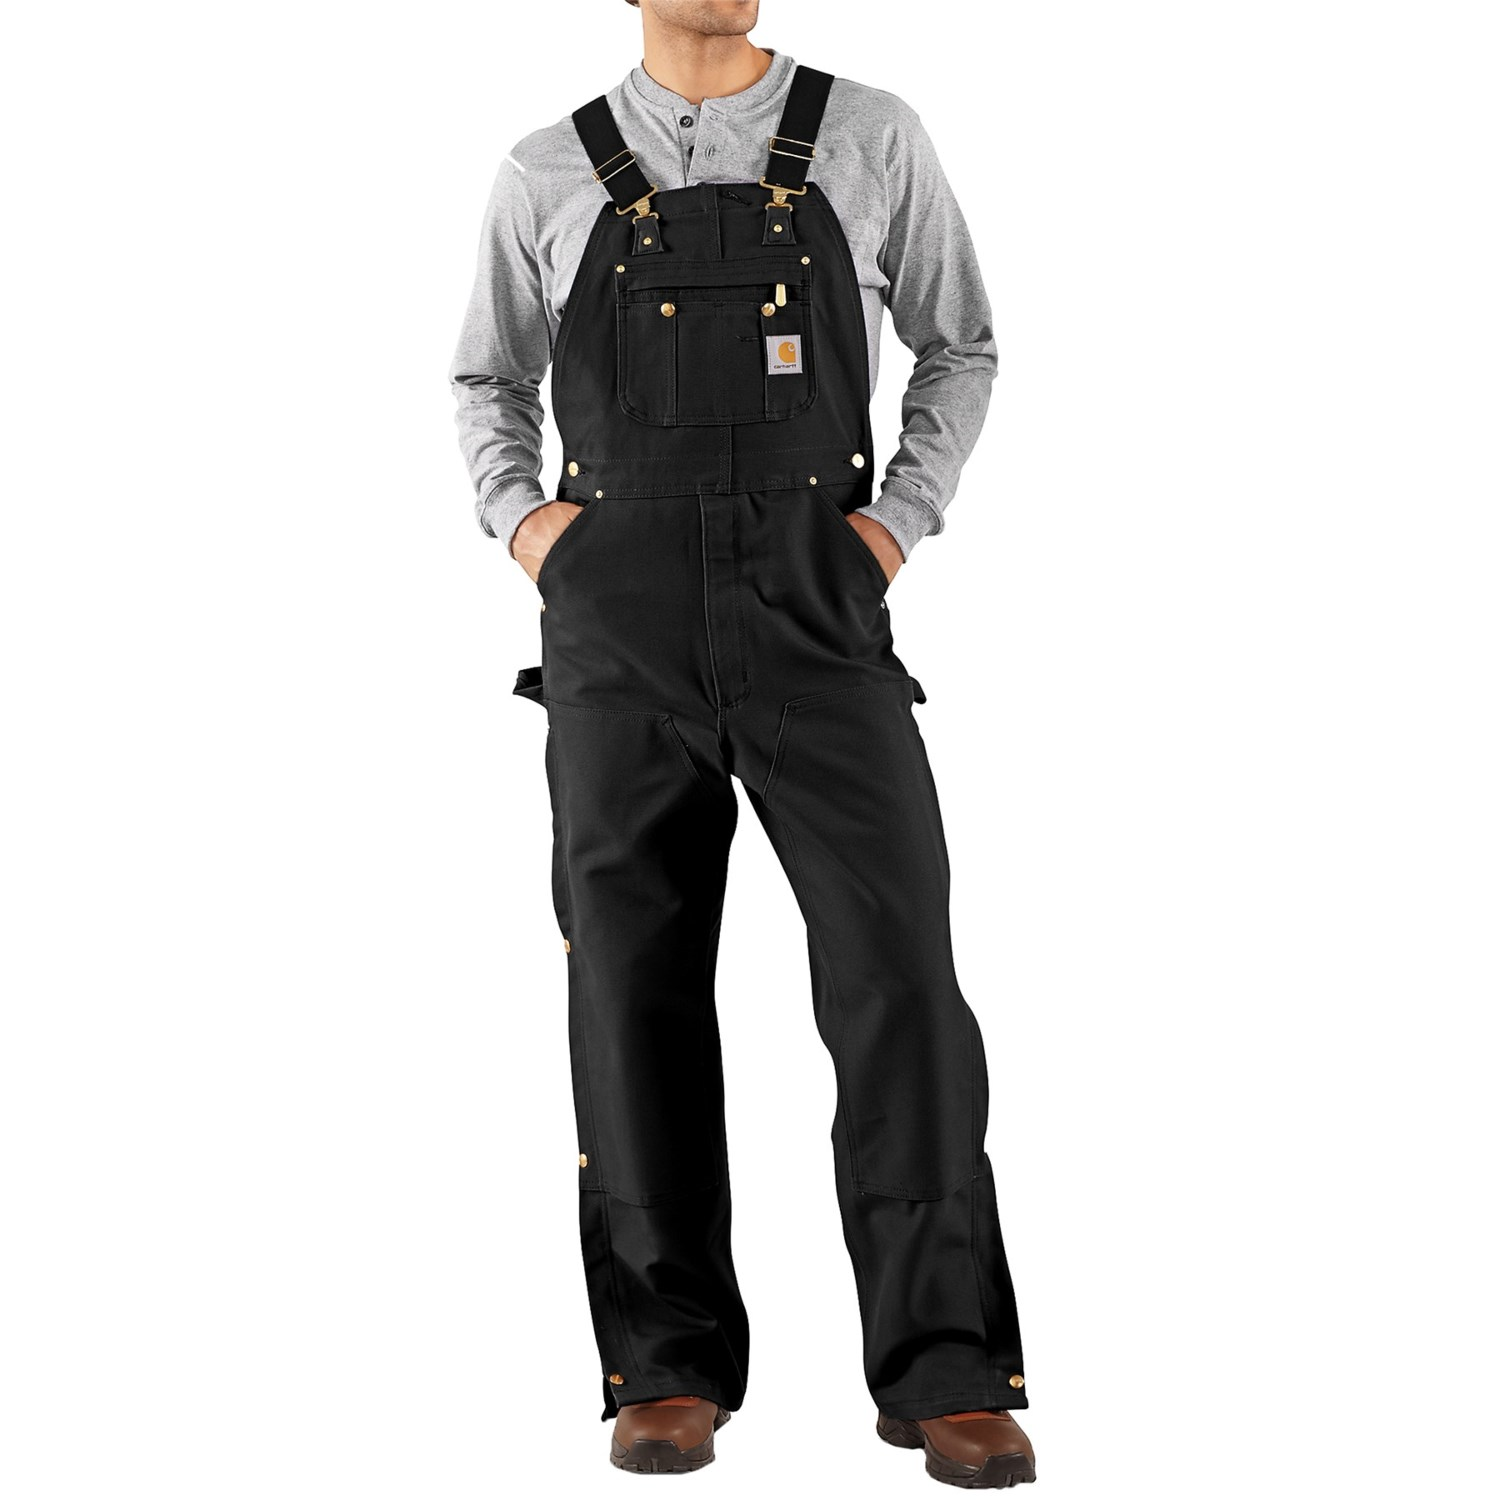 Oct 28, Carhartt Force Extremes™ Bib Overall - The best possible overalls for Summer!